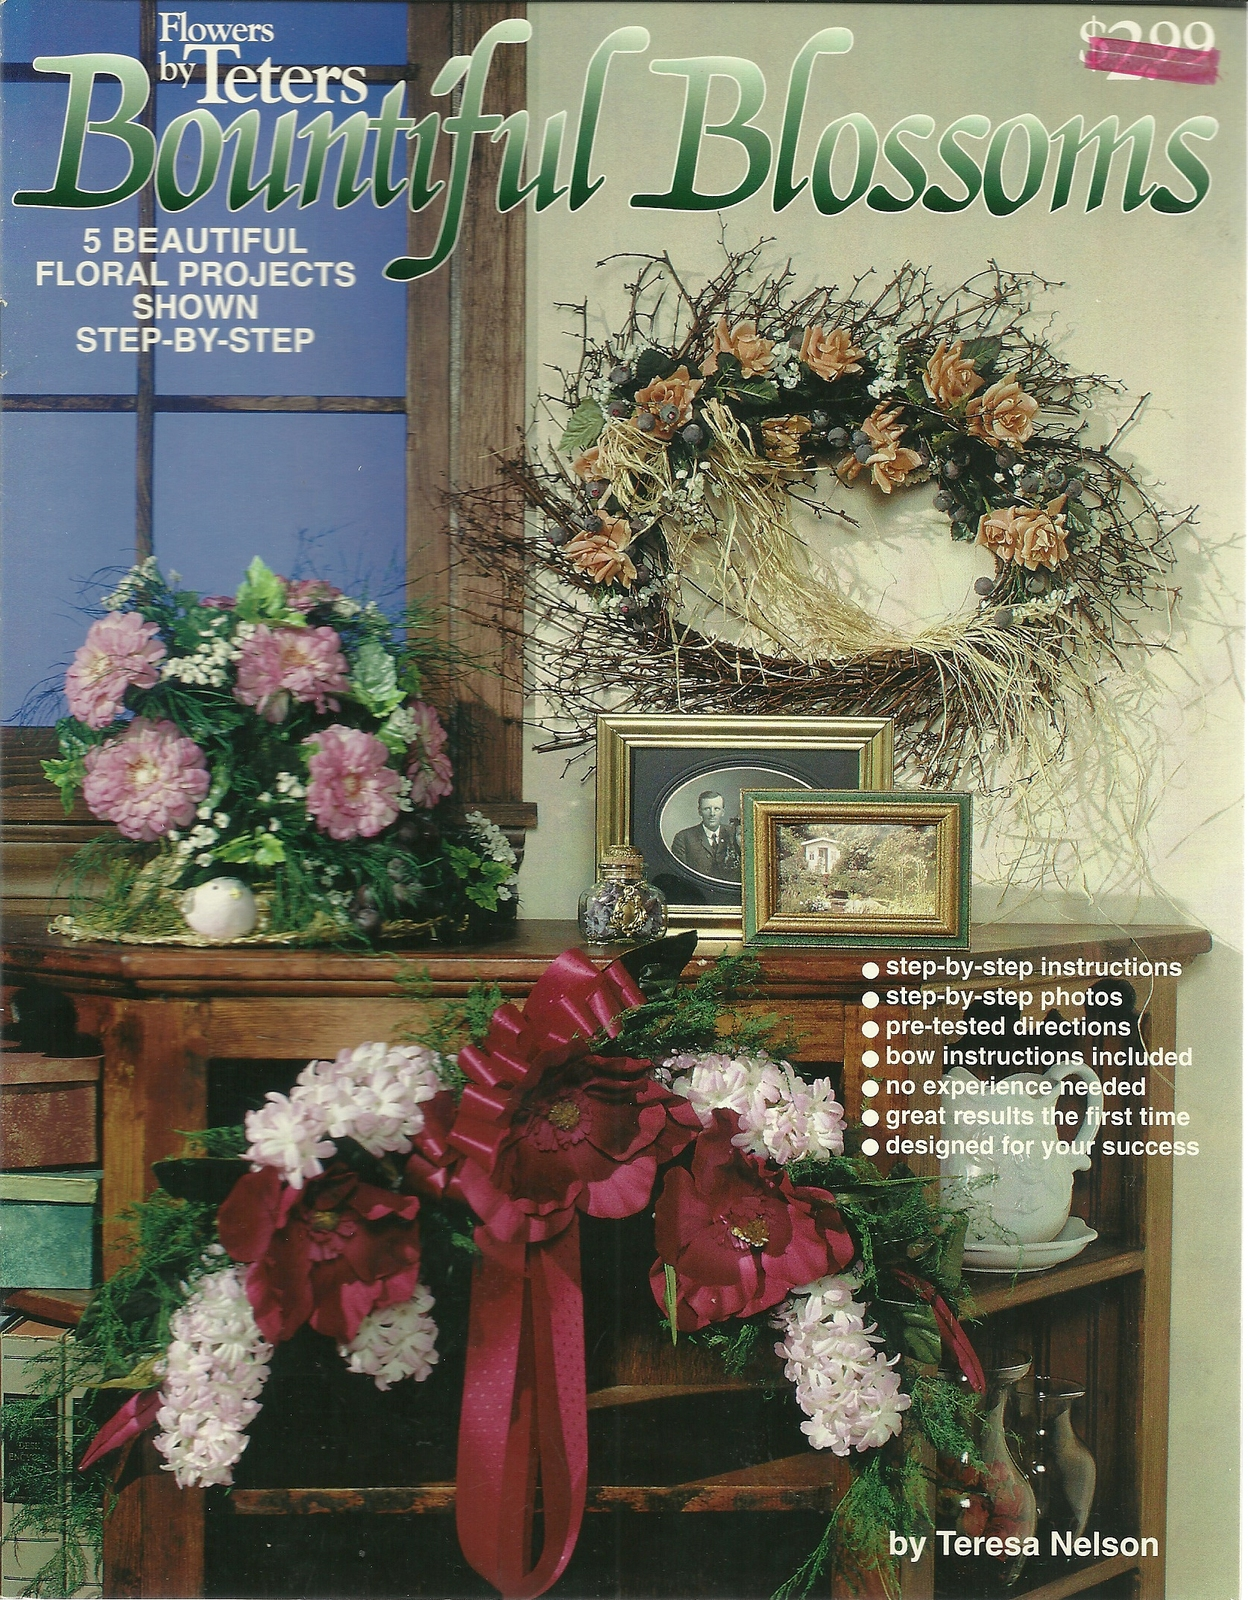 Bountiful blossoms flowers by teters floral craft book pop 802  1